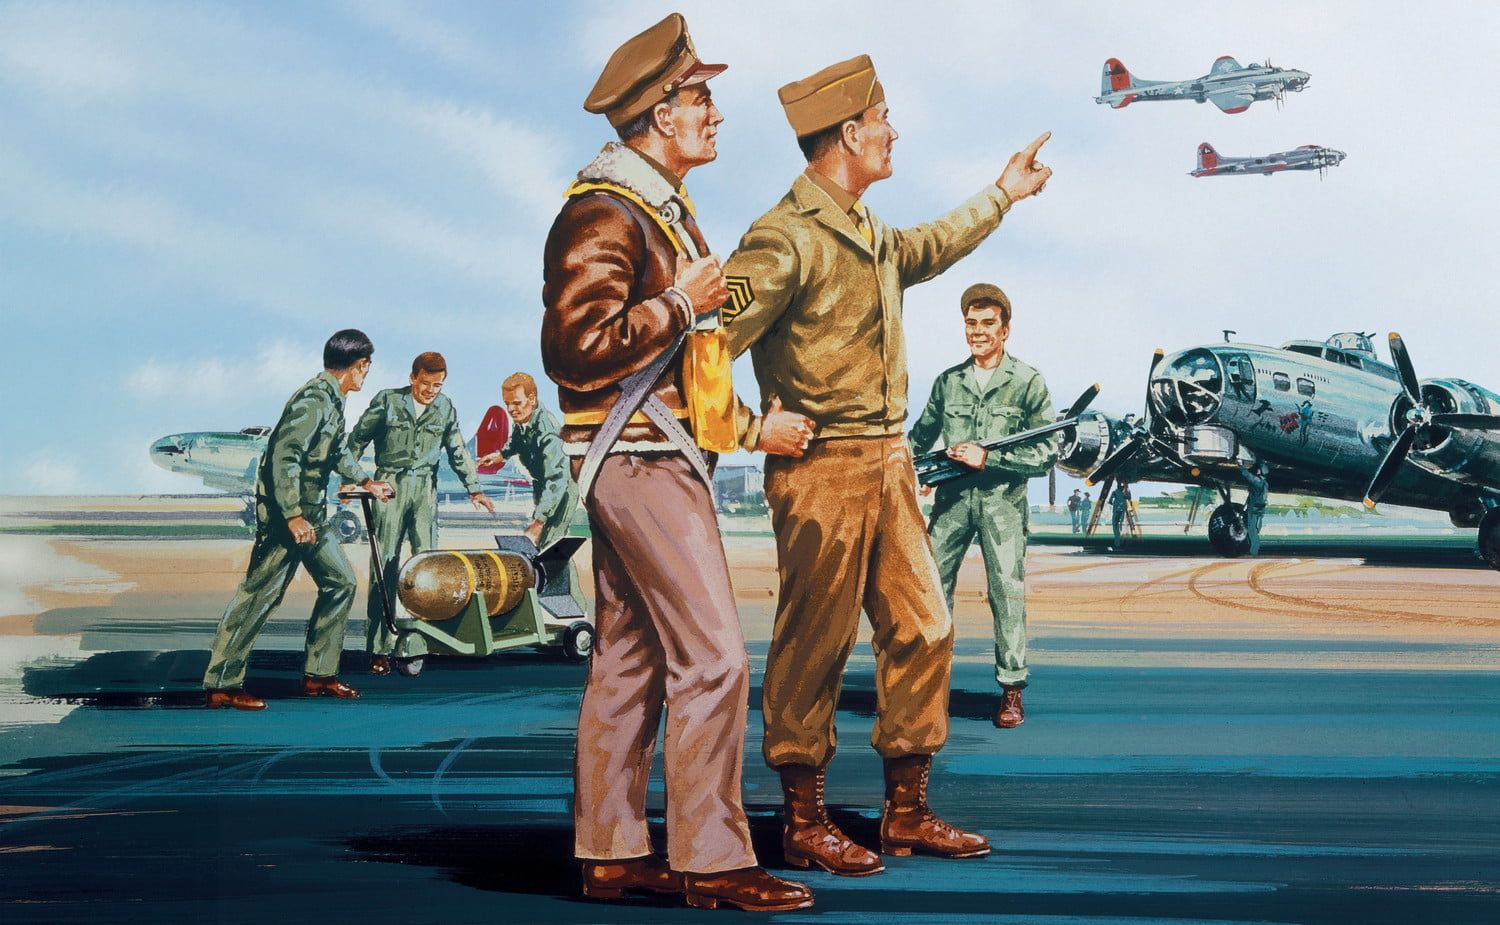 Airfix USAAF Personnel 1:76 Scale Plastic Model Kit